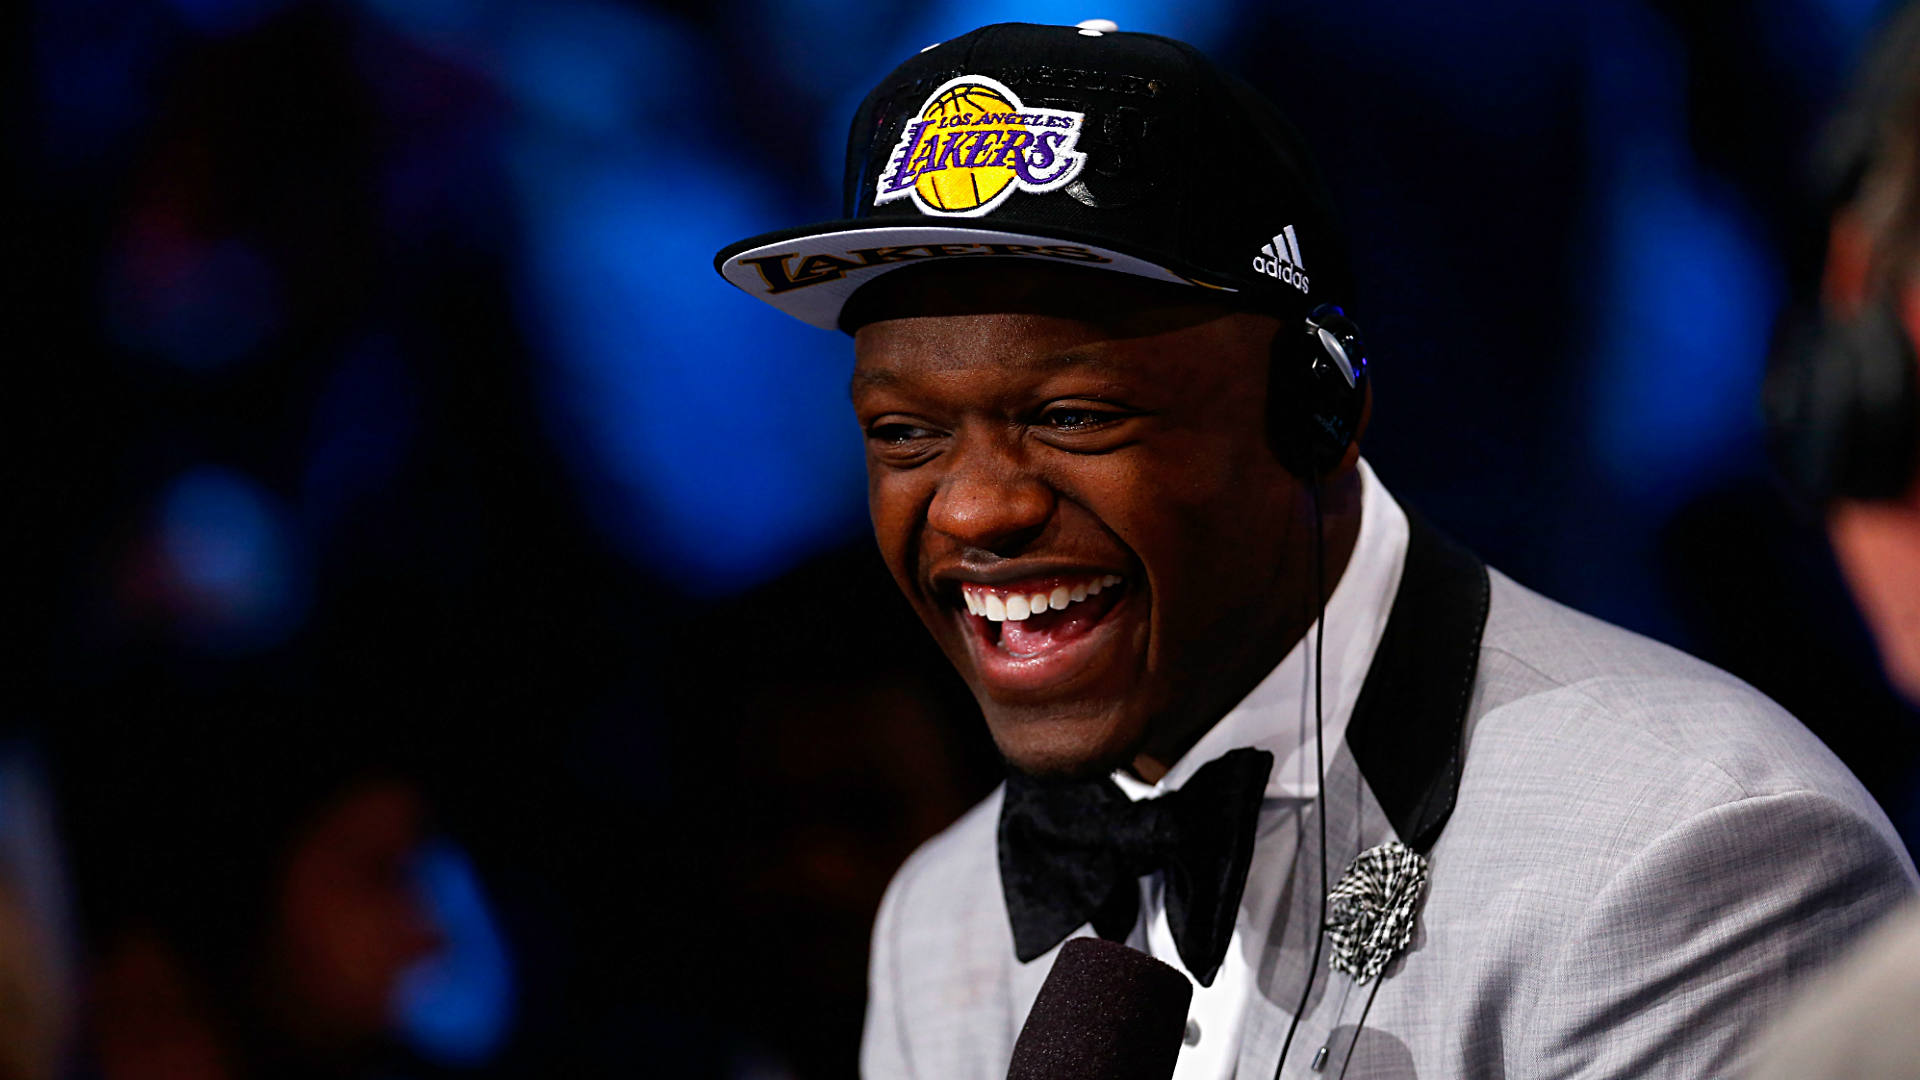 Julius-Randle-102014-FTR-Getty.jpg